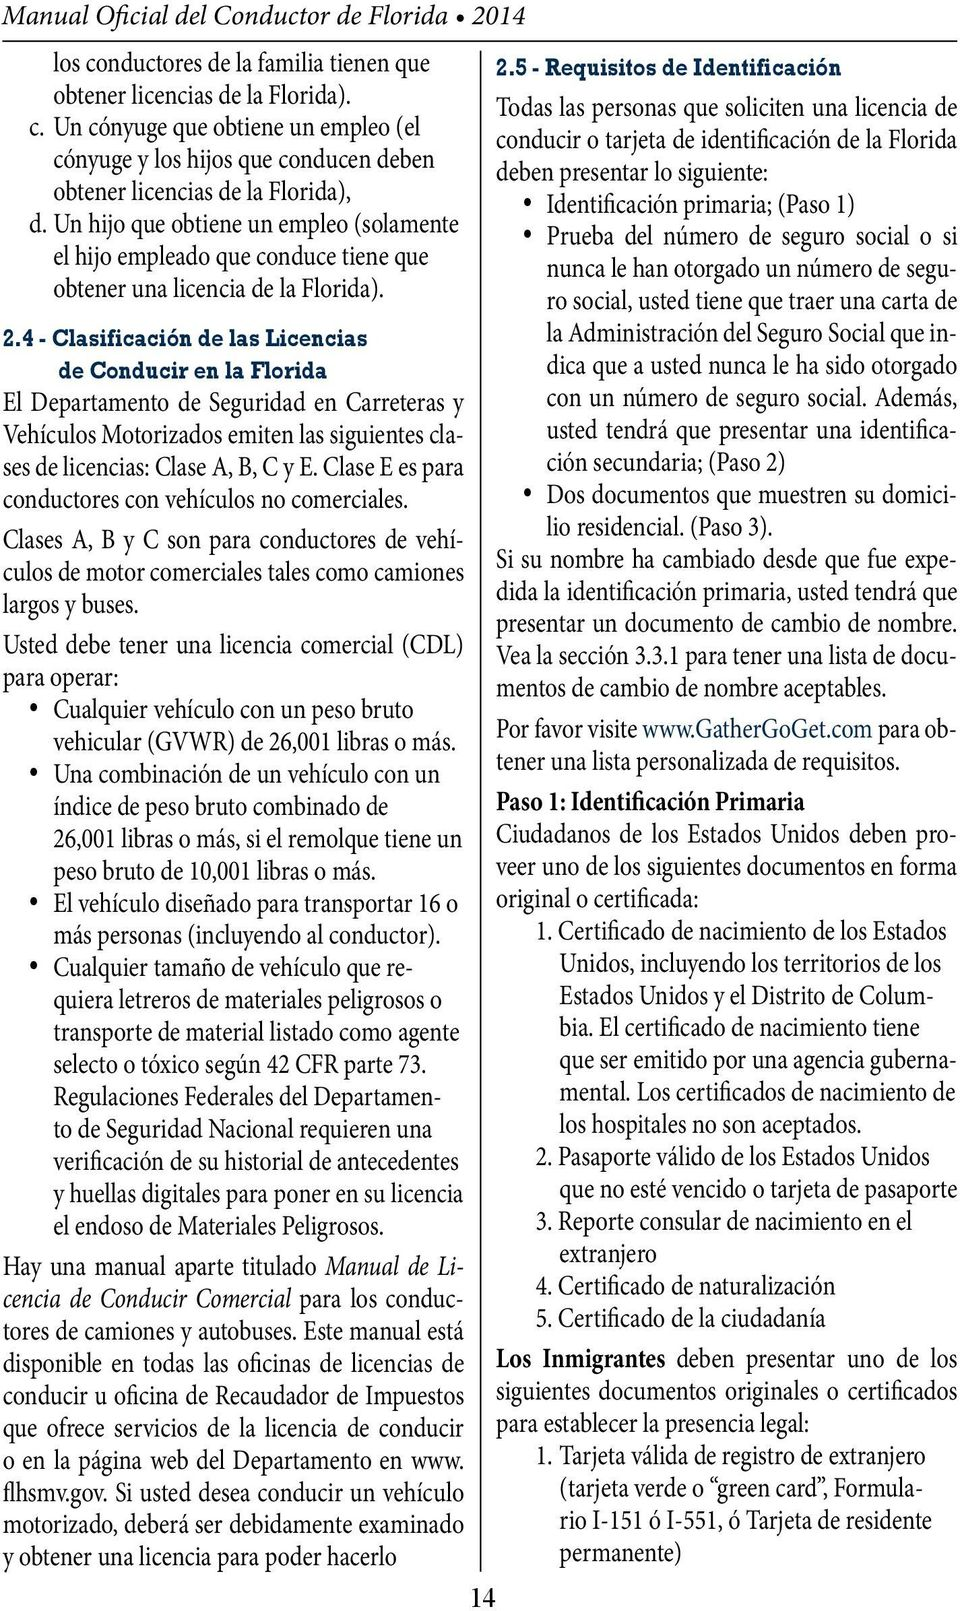 Manual del conductor de la Florida - PDF